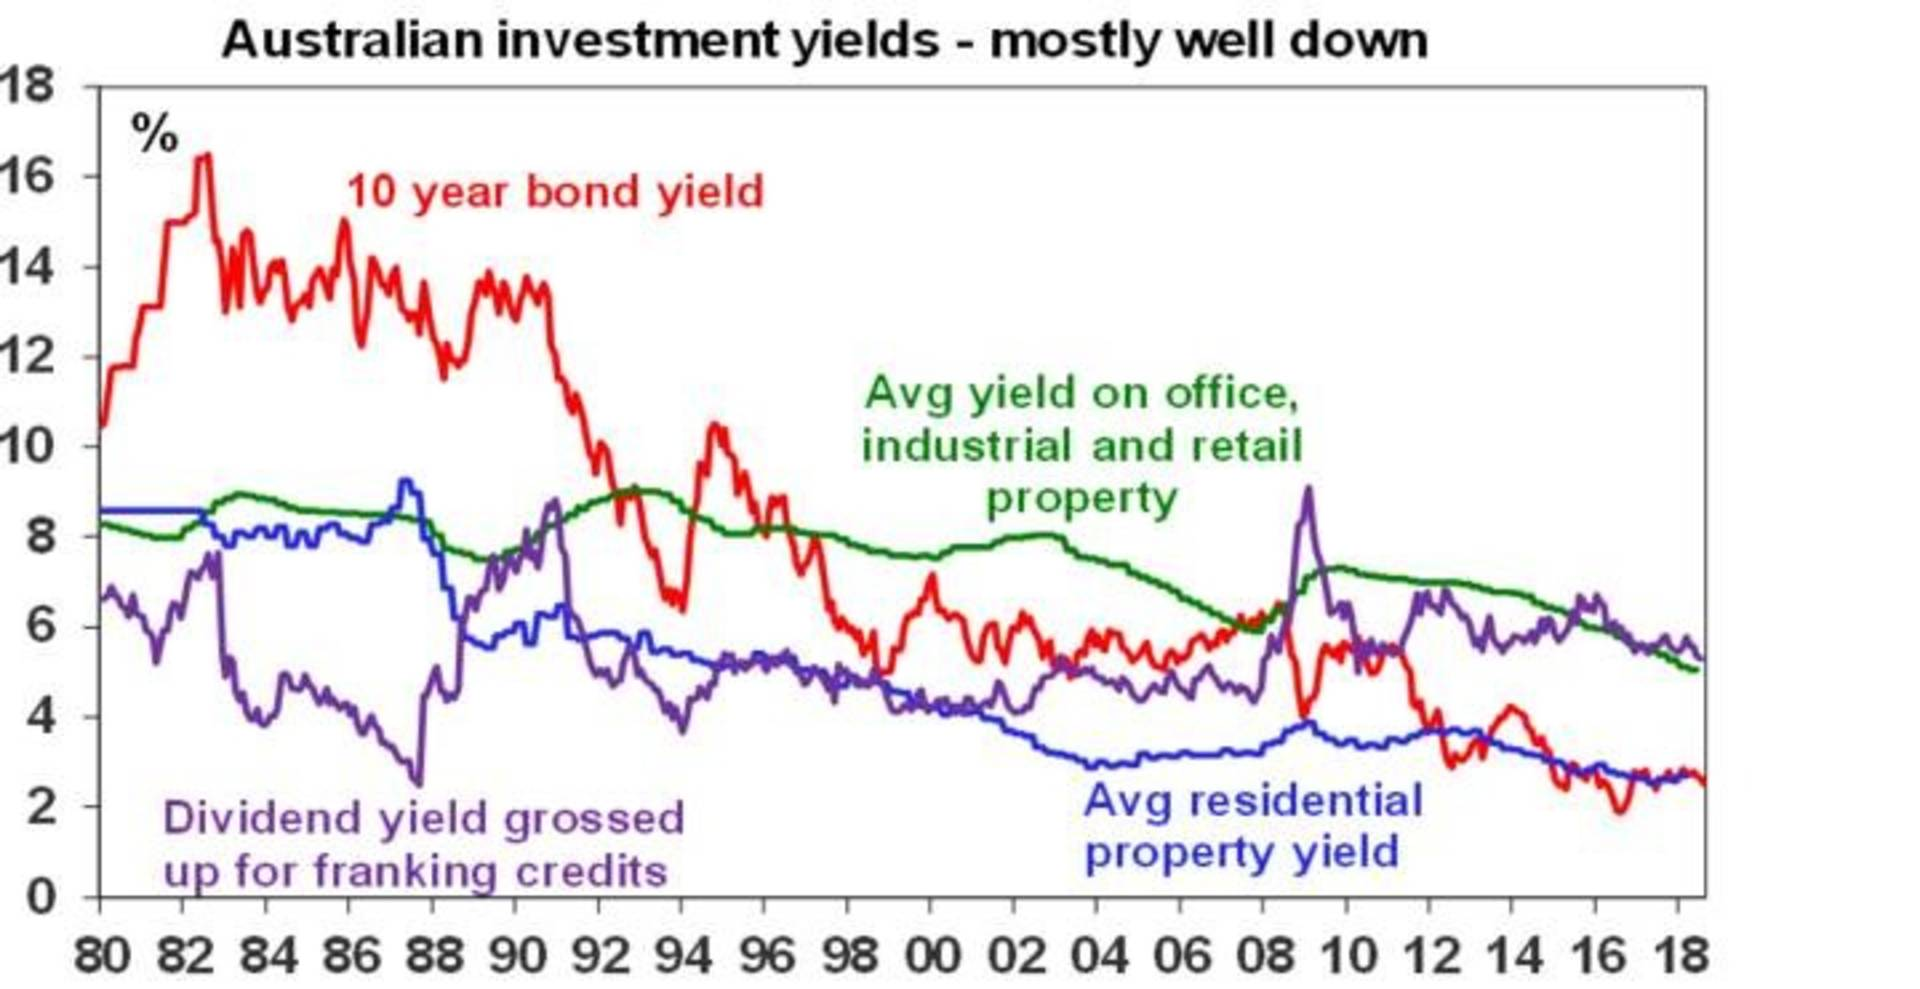 Australian investment yields